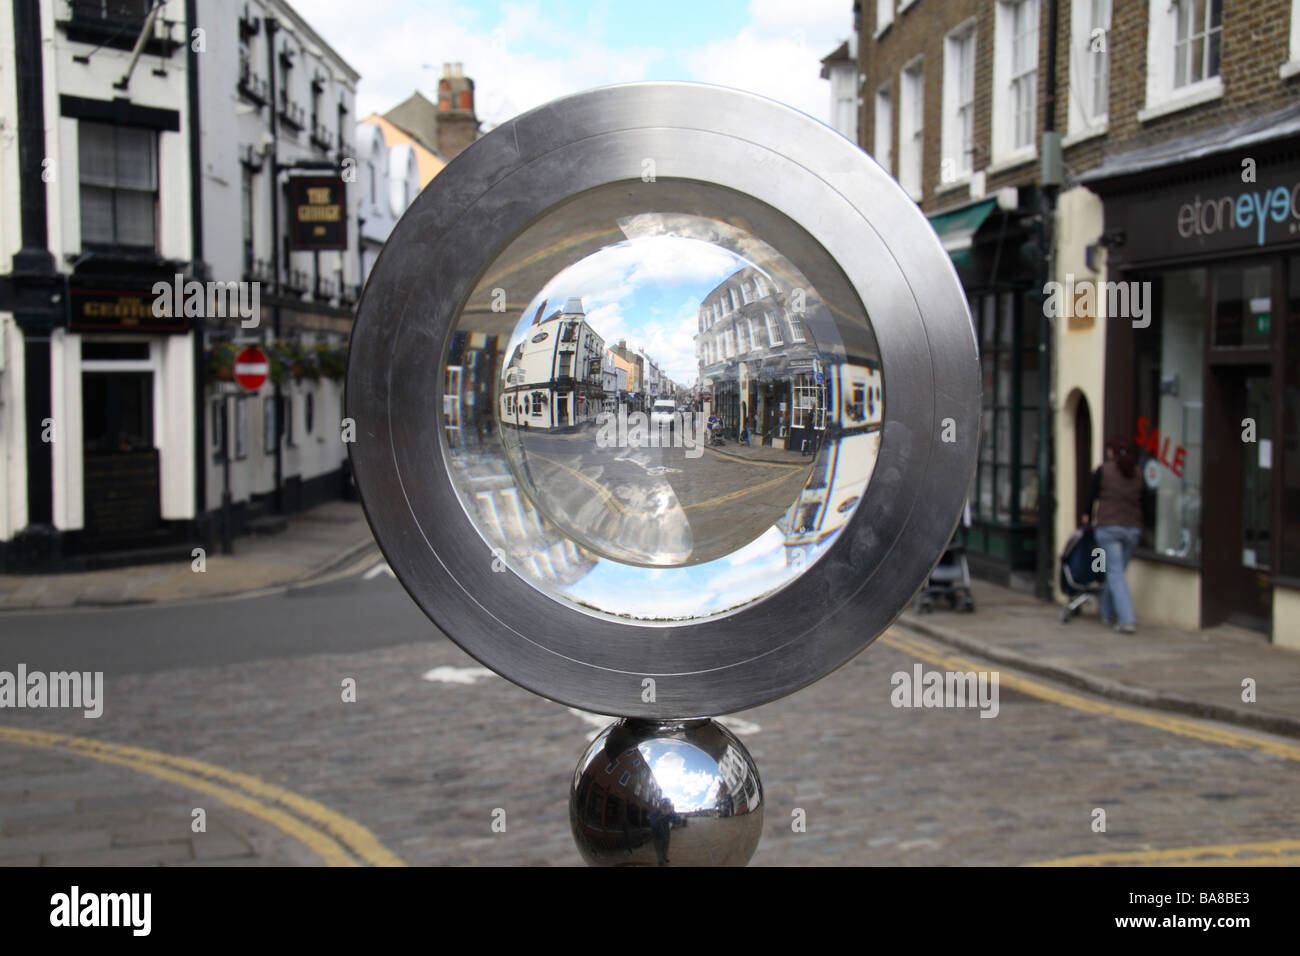 Looking through a 'looking glass' towards High Street, Eton, Berkshire. - Stock Image